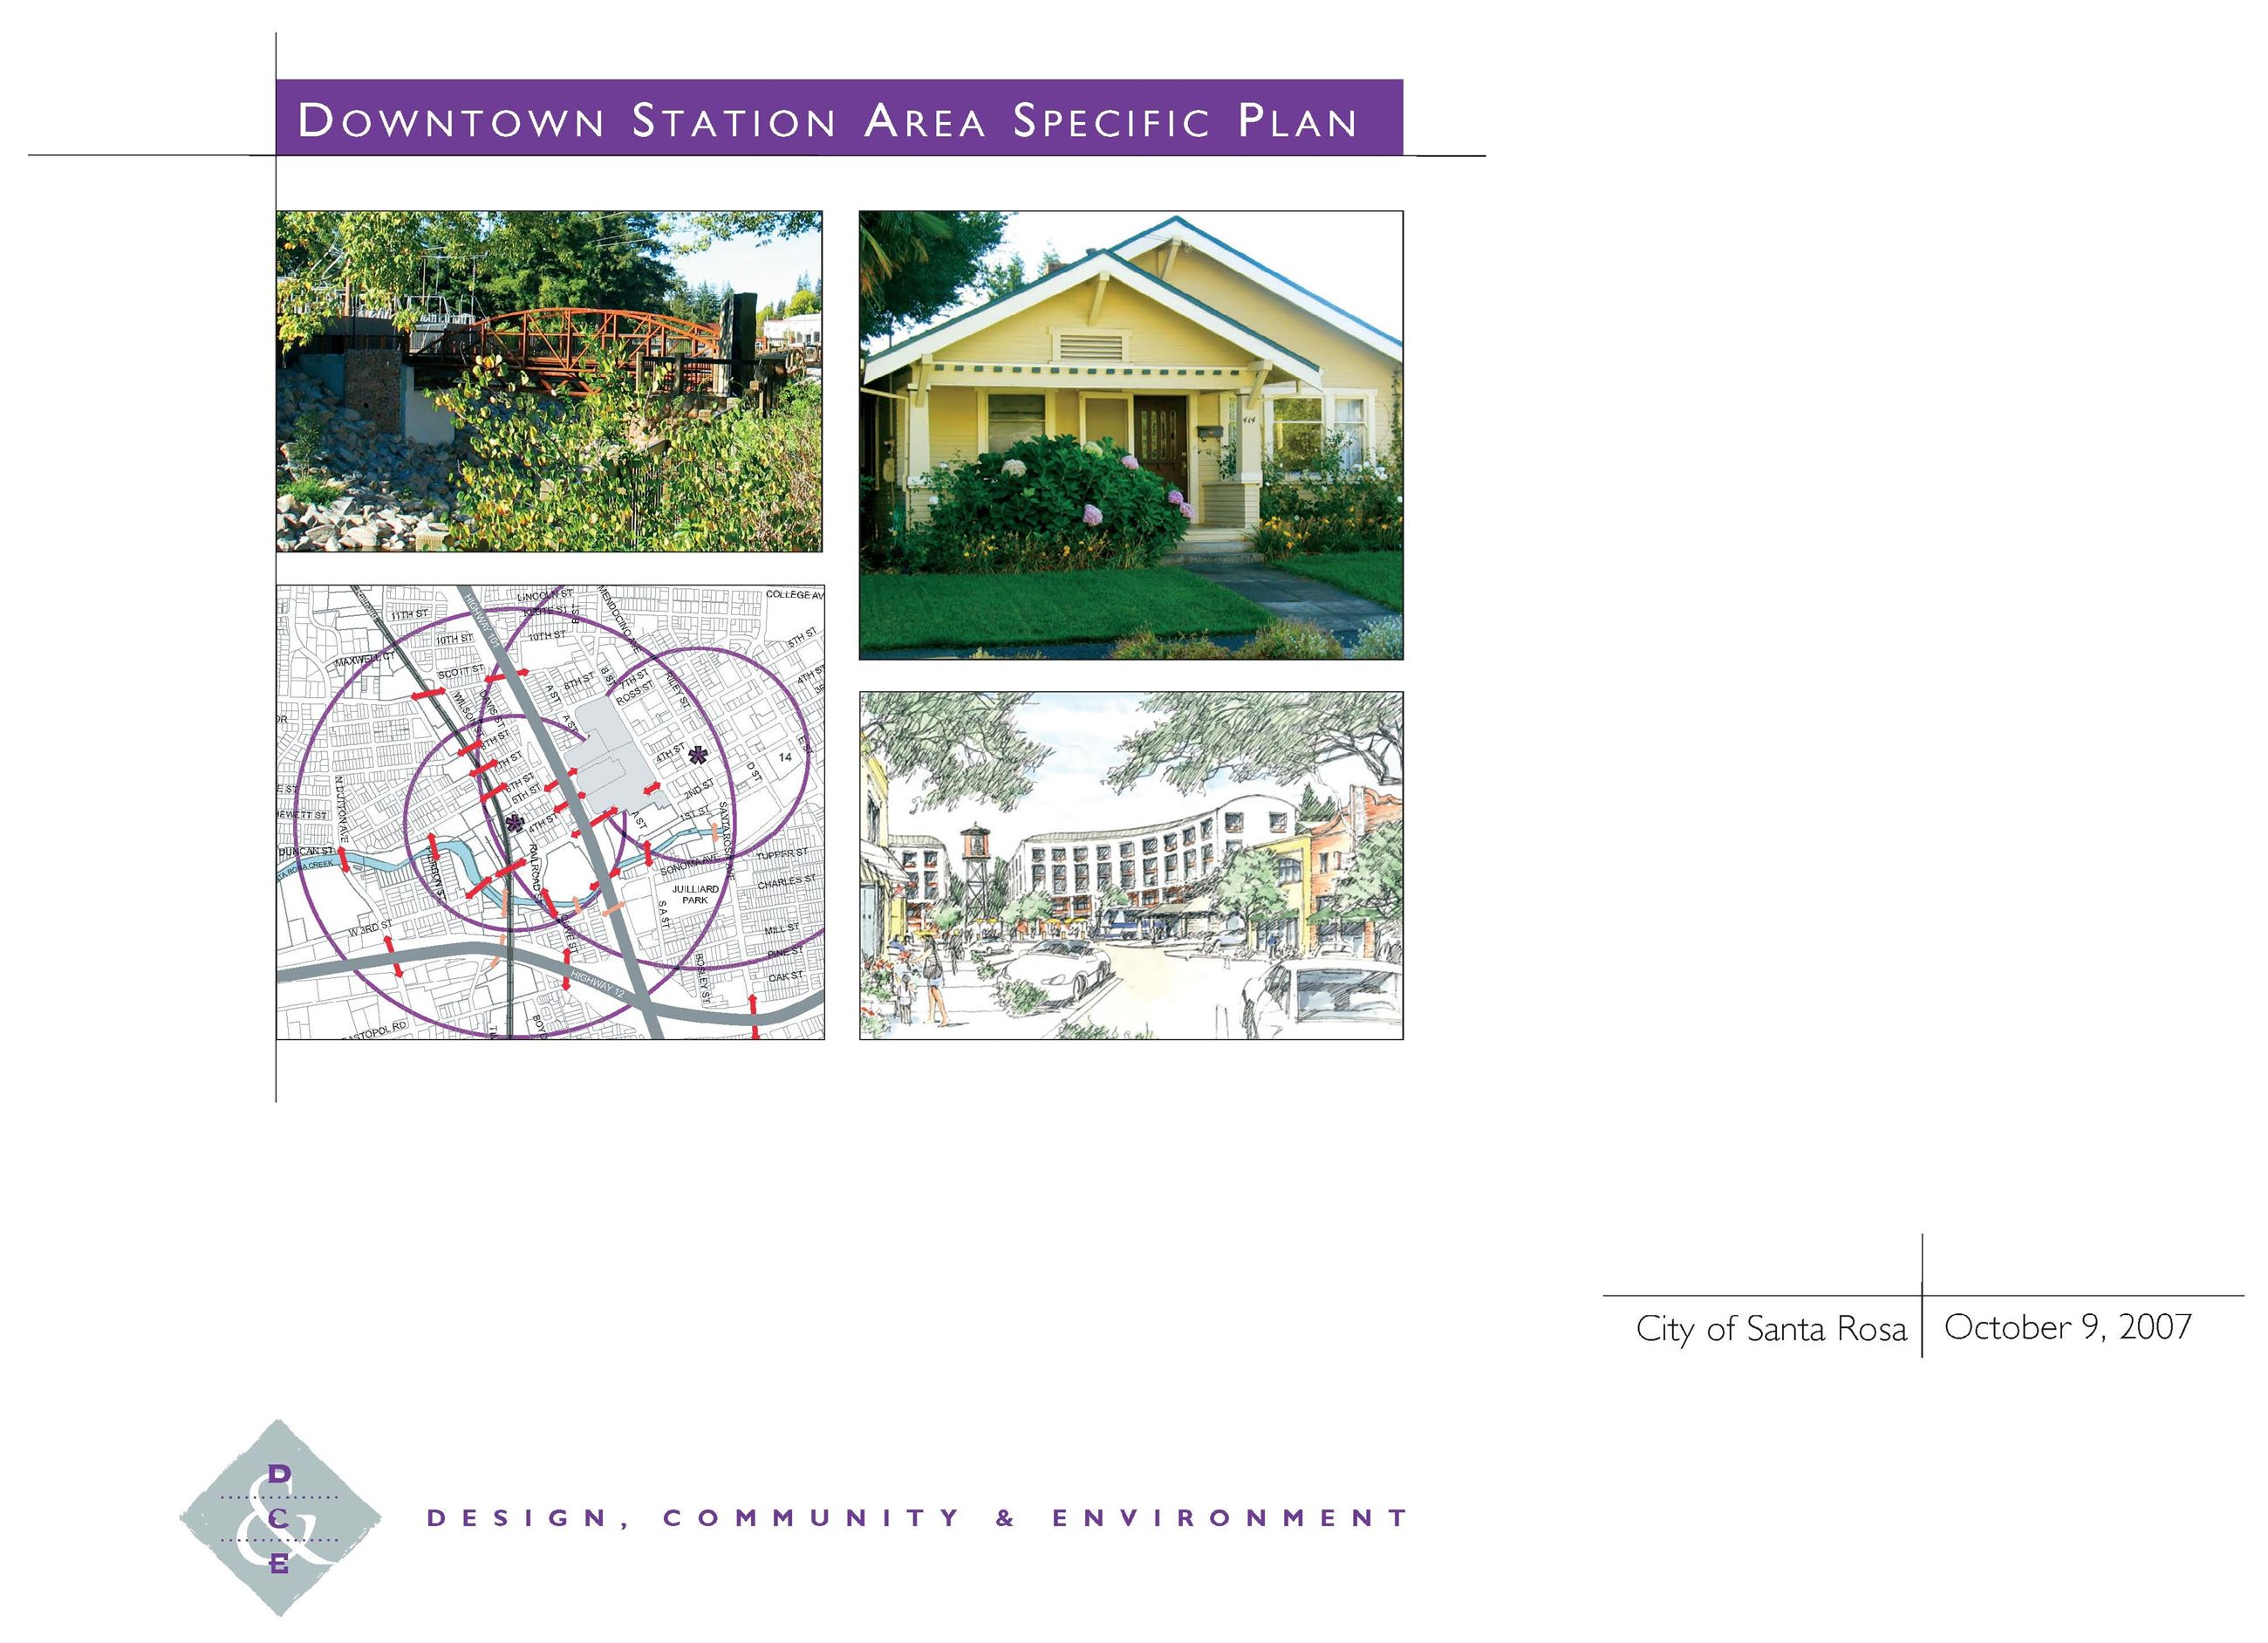 2007 Specific Plan Cover Page